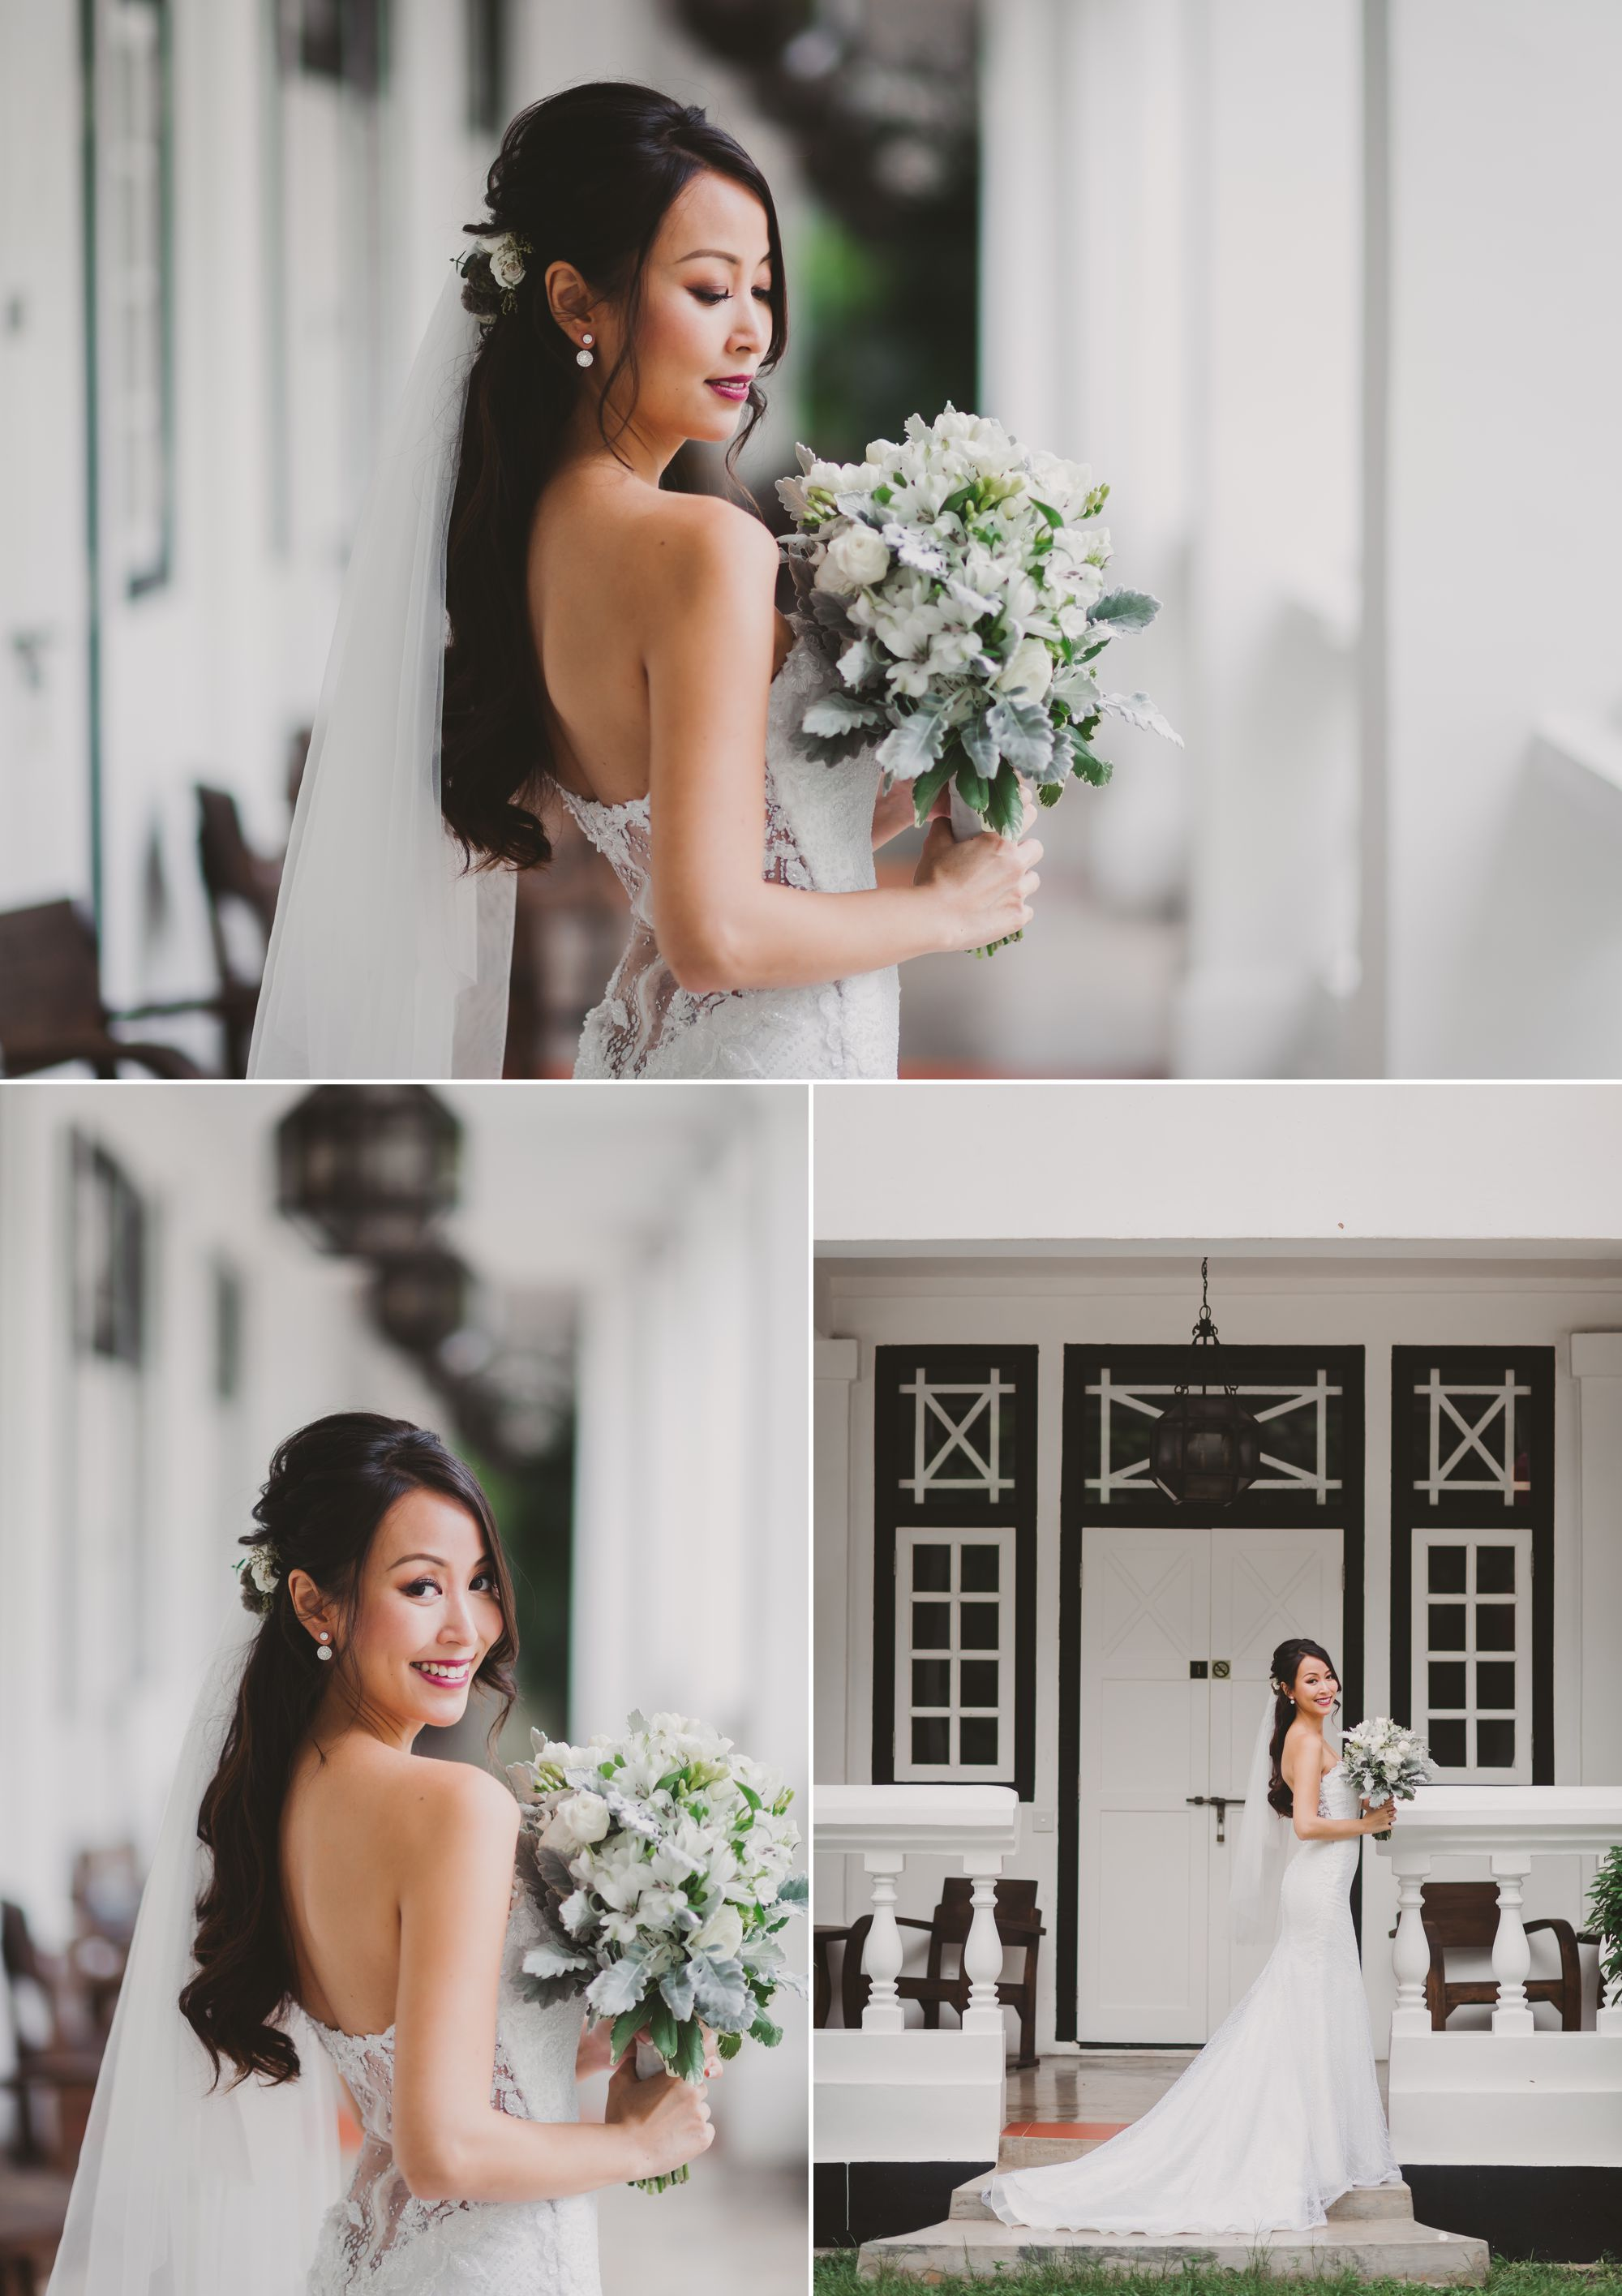 wedding_photography_singapore_ 33.jpg